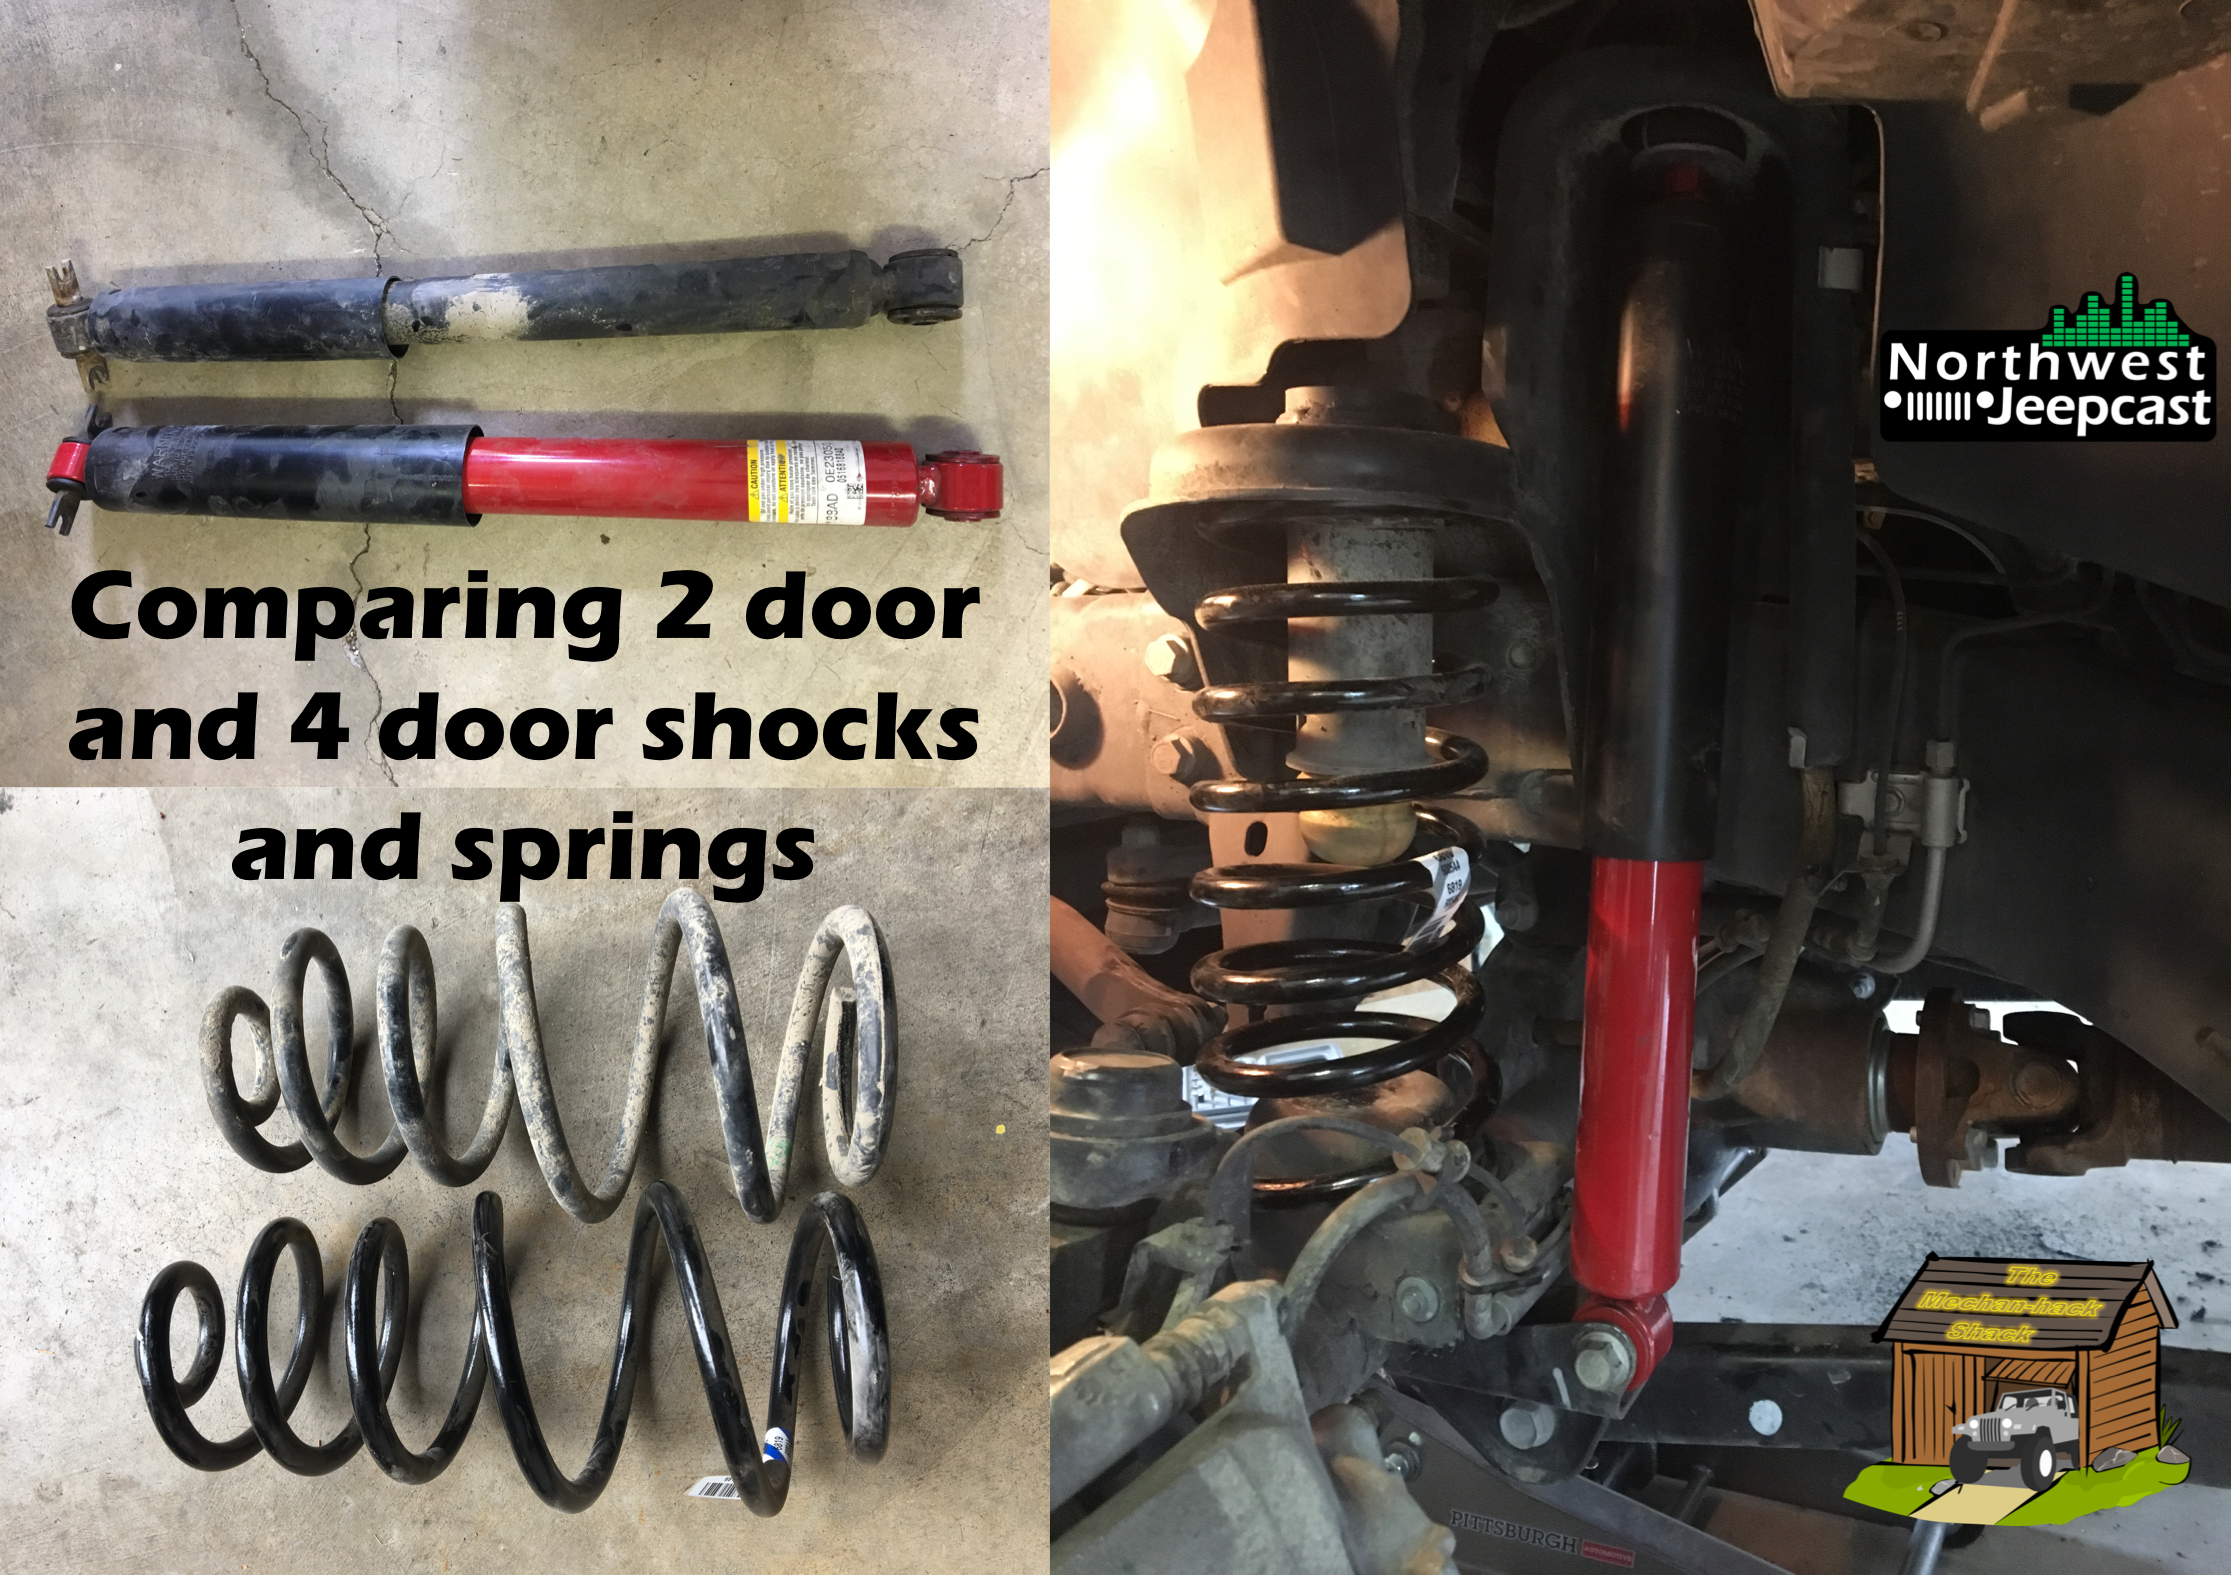 Northwest Jeepcast - A Jeep Podcast - 4 Door Shocks and Springs on a 2 Door